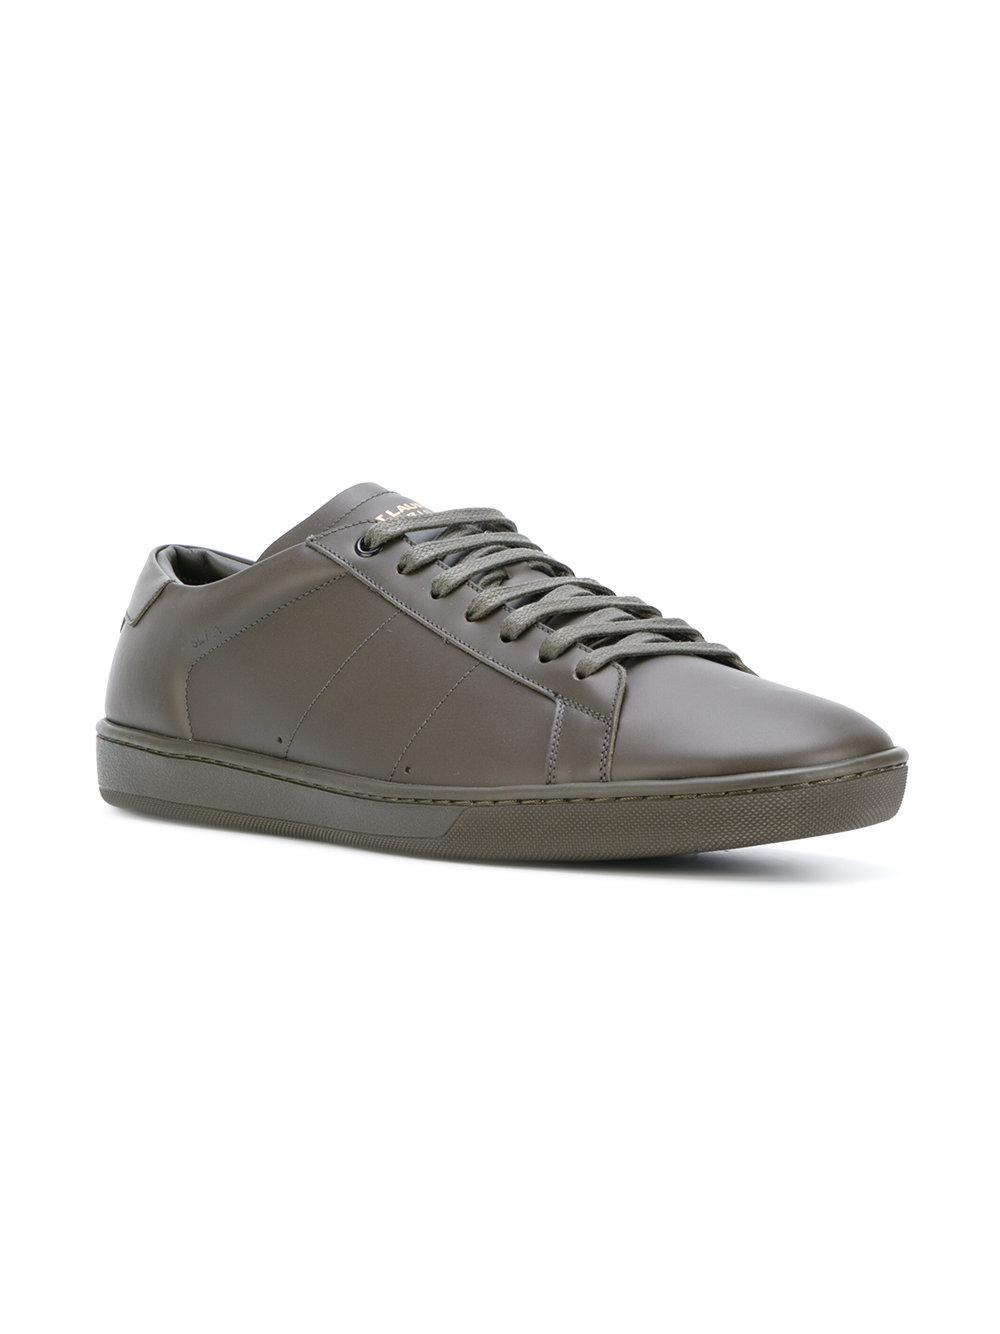 22bc1daae813 Lyst - Saint Laurent Signature Court Classic Sl 01 Sneakers in Green for  Men - Save 38%